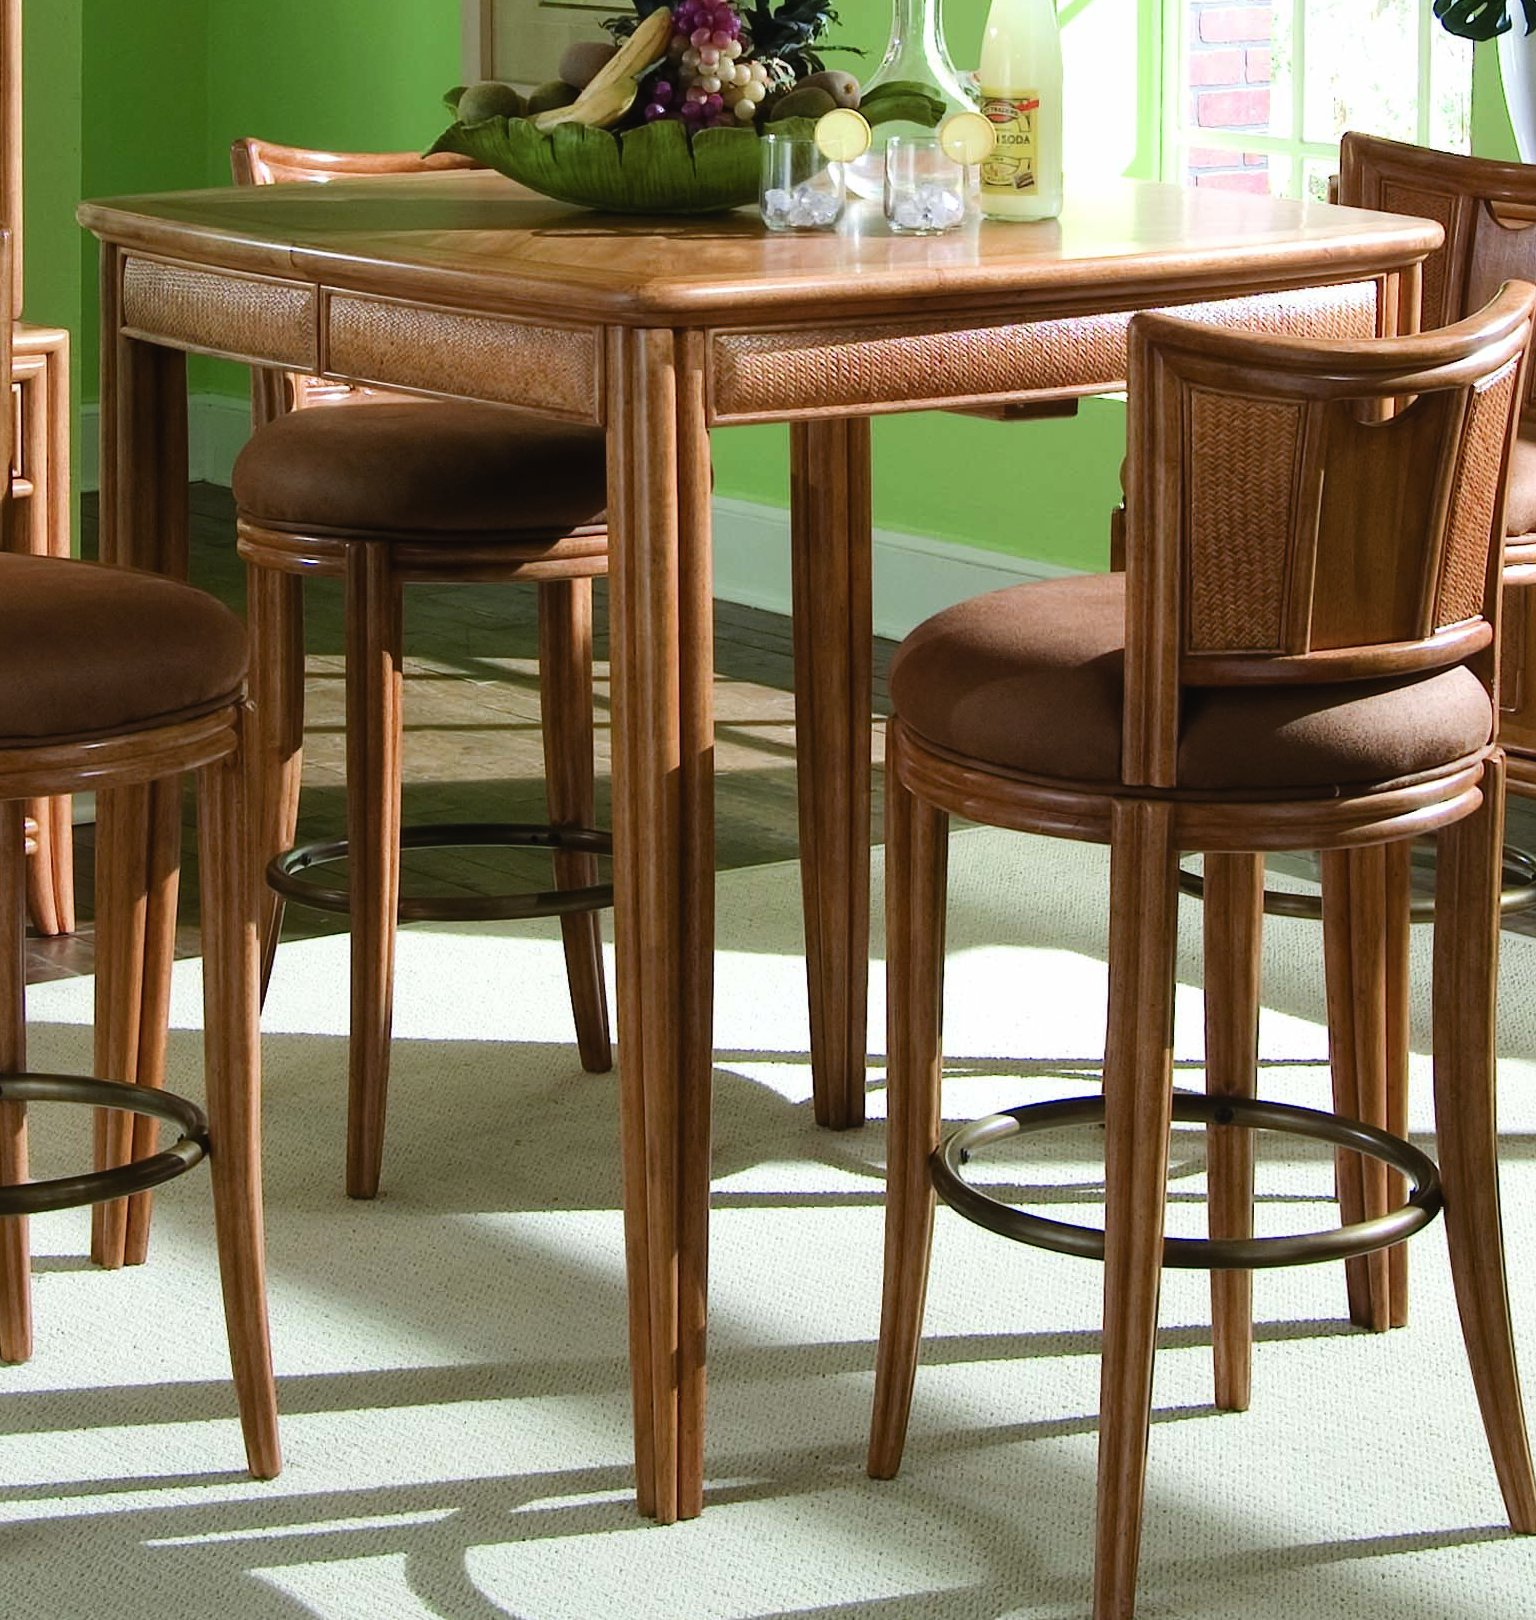 Exquisite bistro table and chairs for home furniture ideas with indoor bistro table and chairs